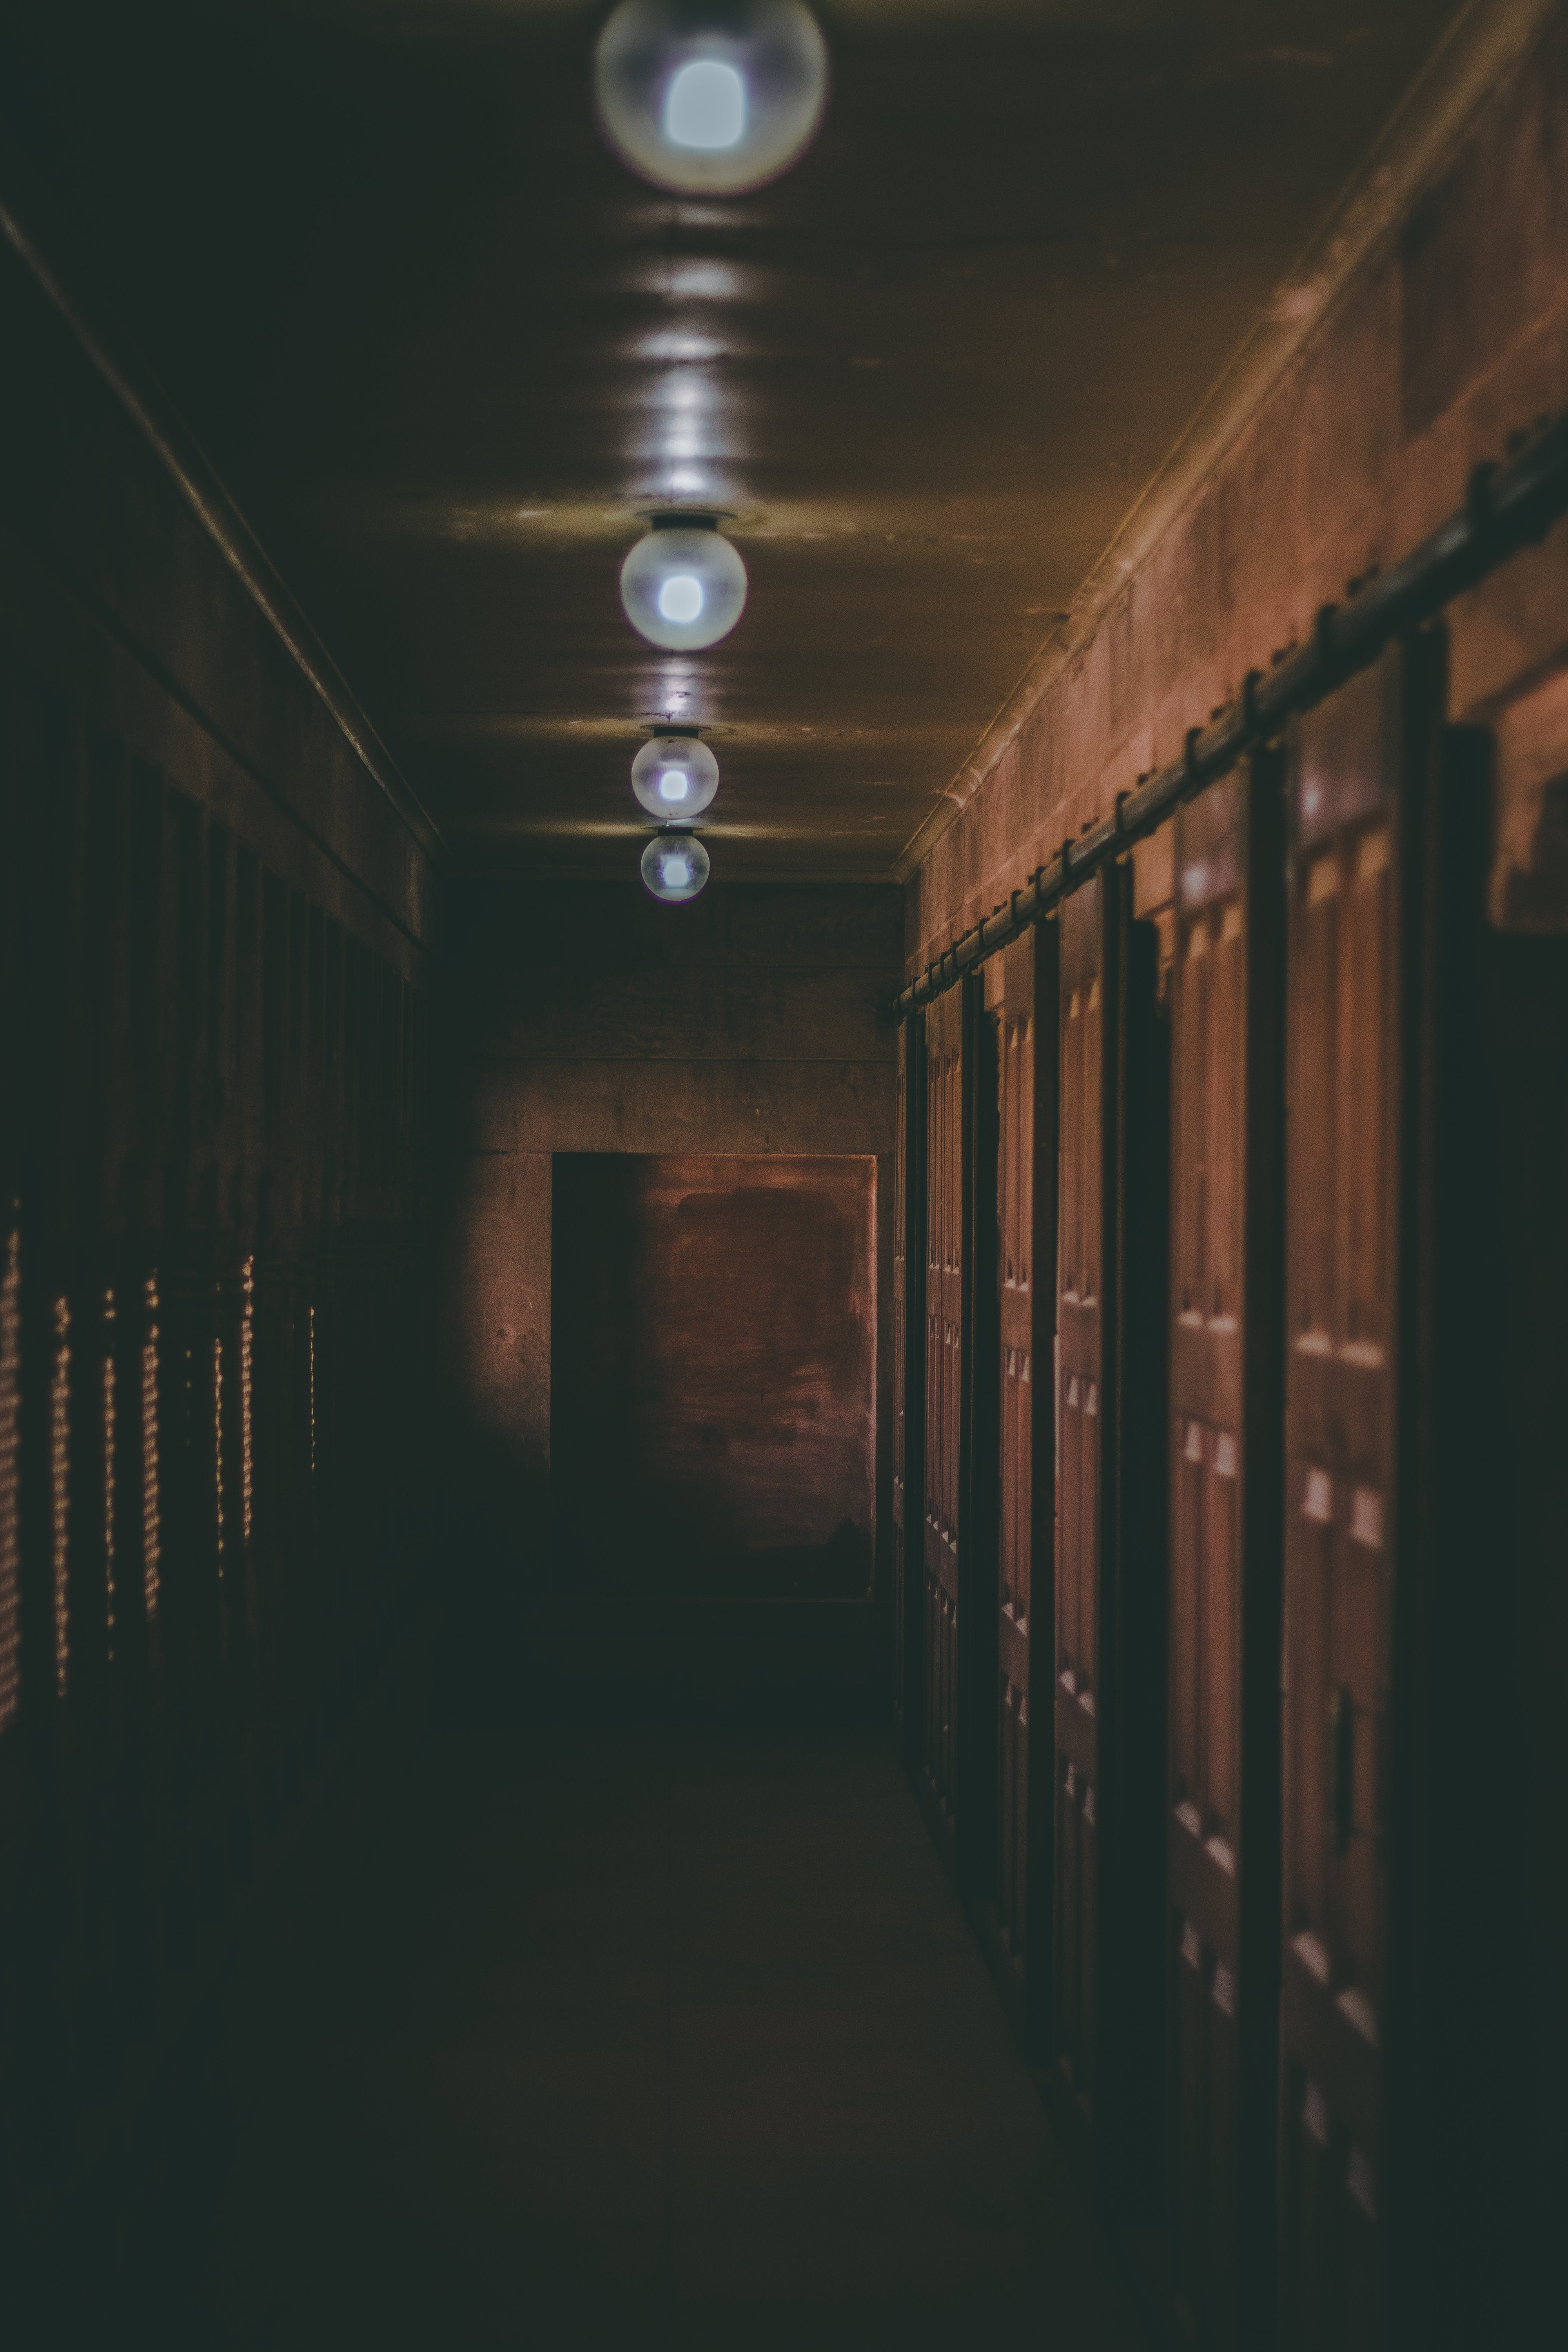 Photo of Hallway With Dim Lights